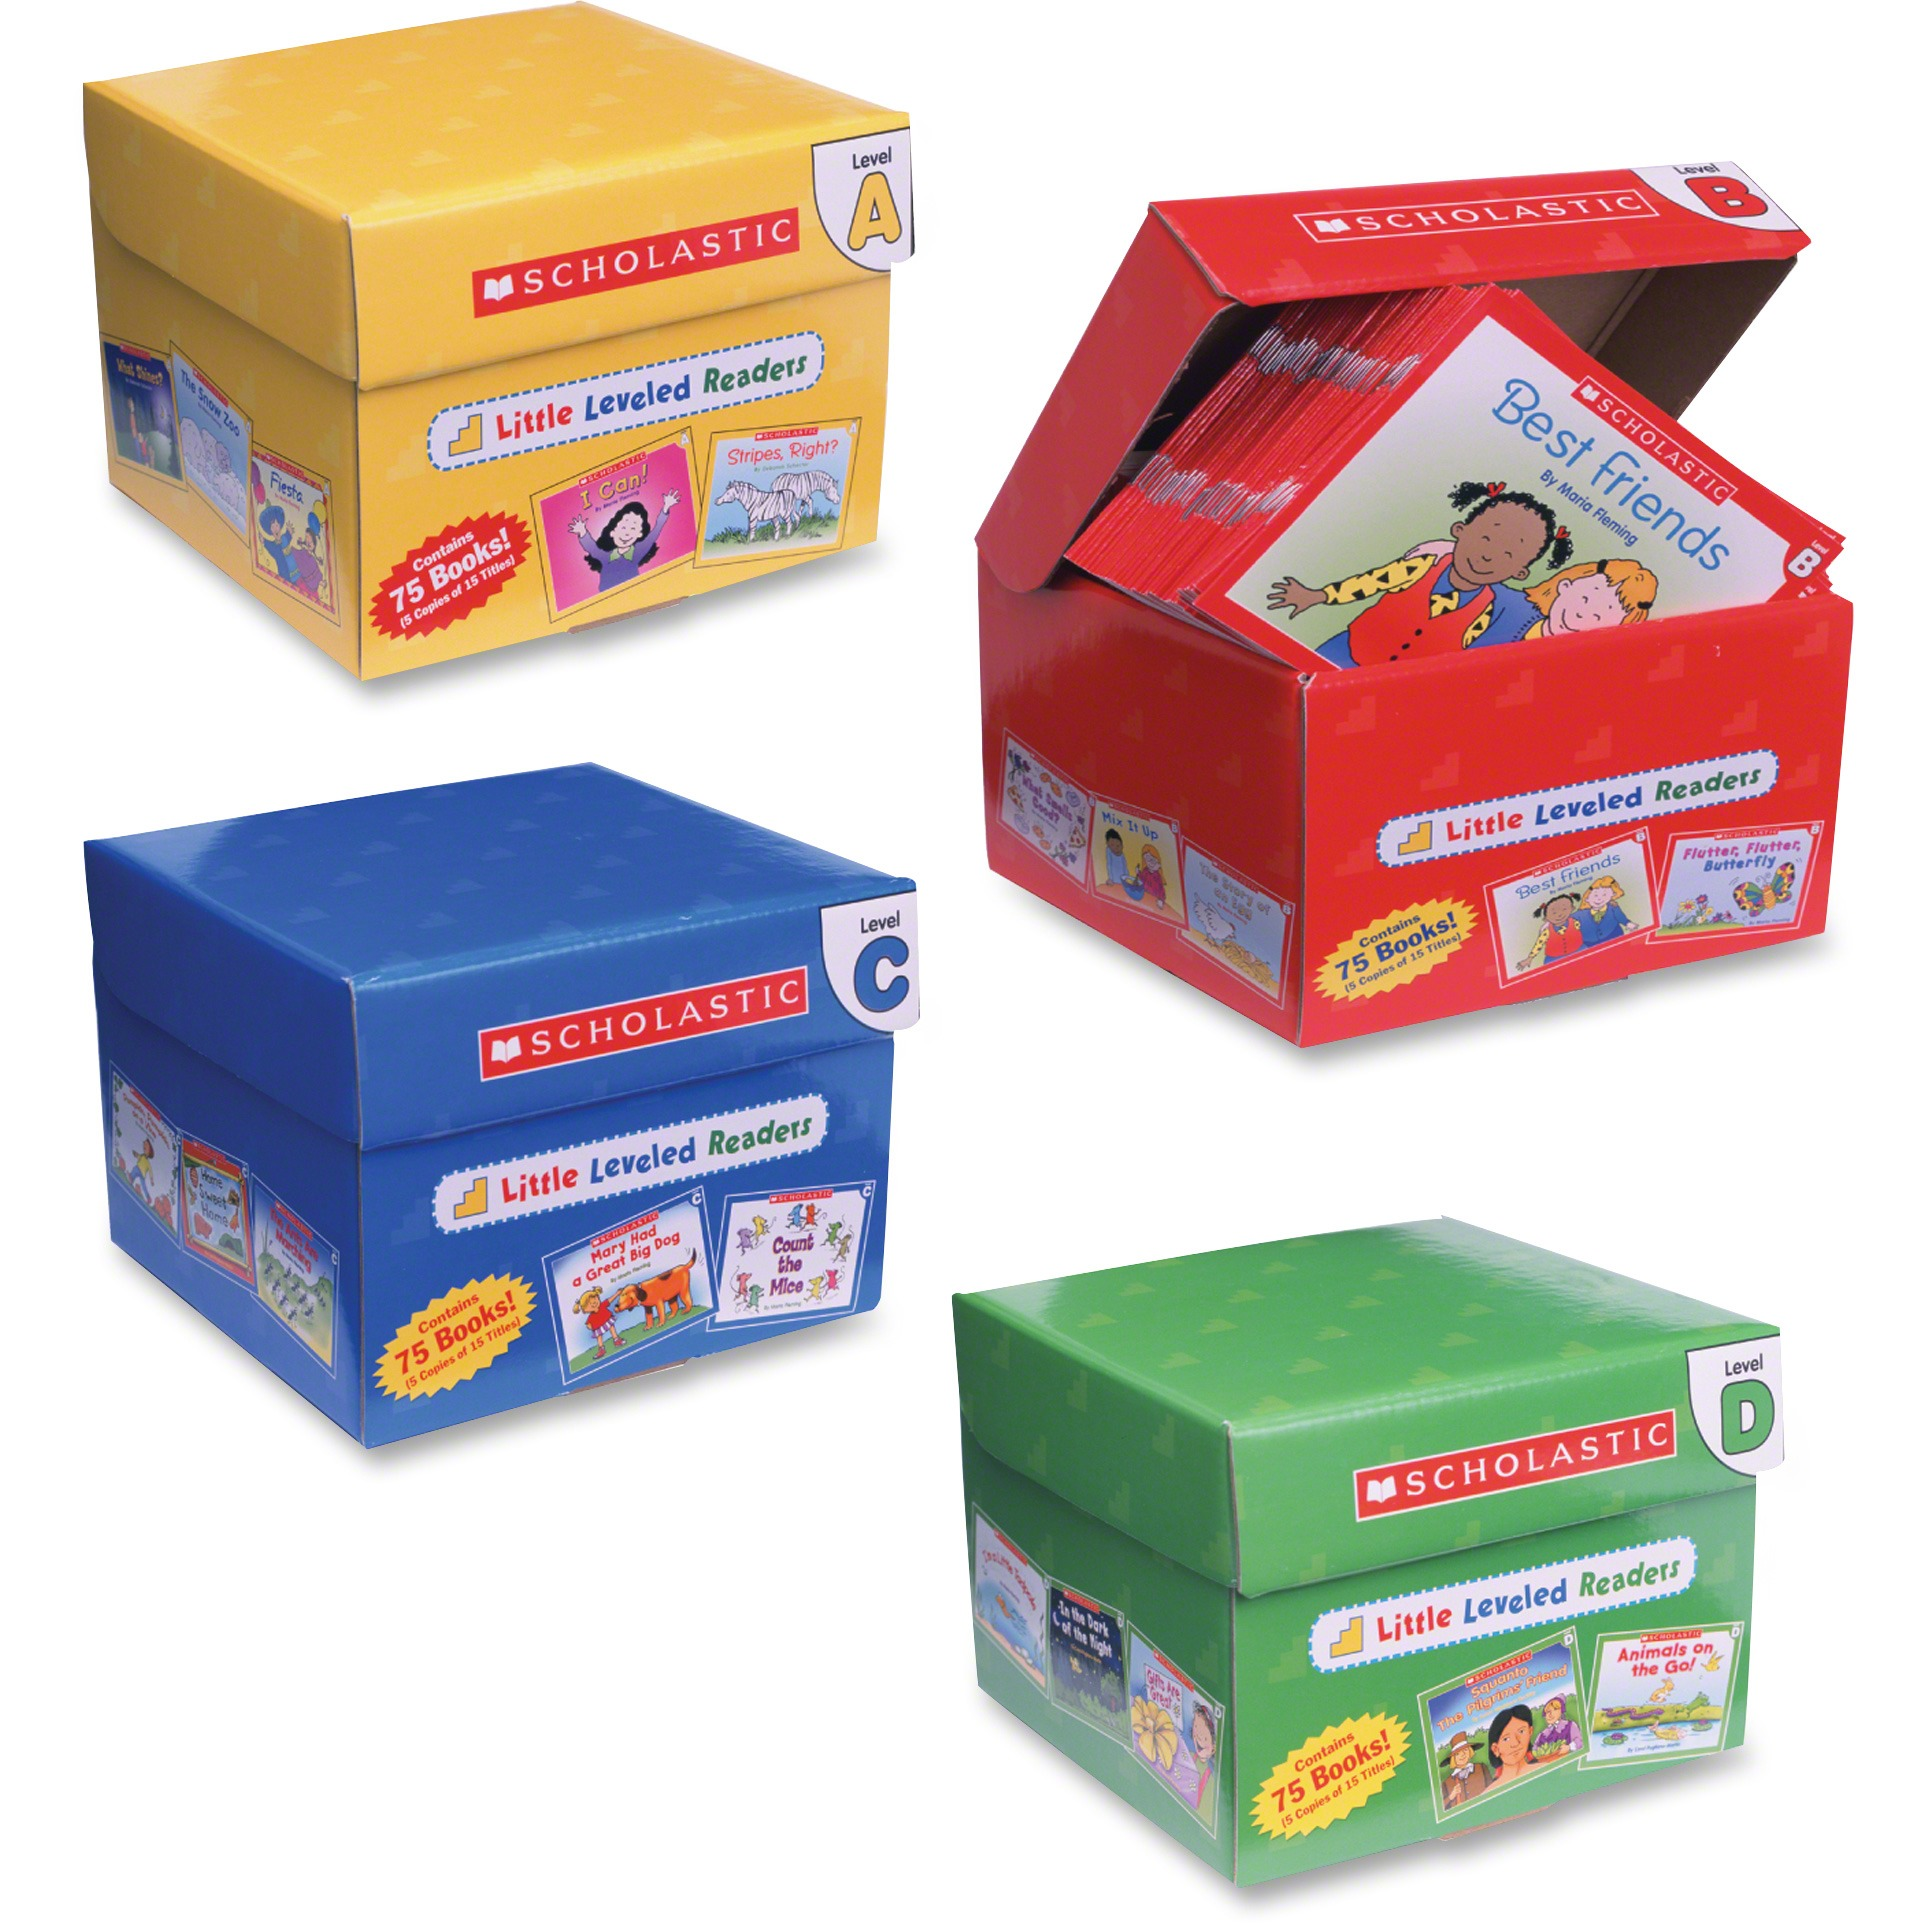 Scholastic, SHS0439632390, Res. Pre K-2 Little Leveled Readers Set, 300 / Set